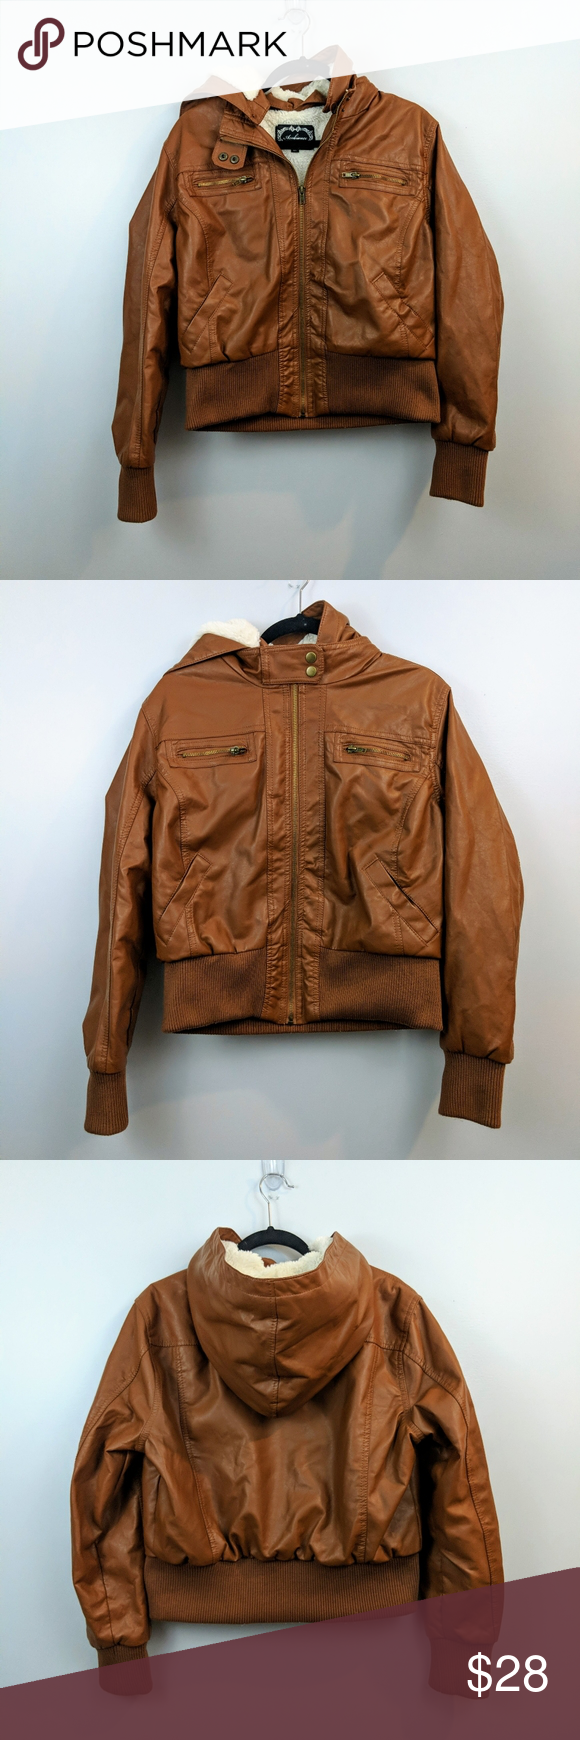 Ambiance Brown Faux Hooded Leather Jacket Leather Jacket With Hood Leather Jacket Leather Bomber Jacket [ 1740 x 580 Pixel ]